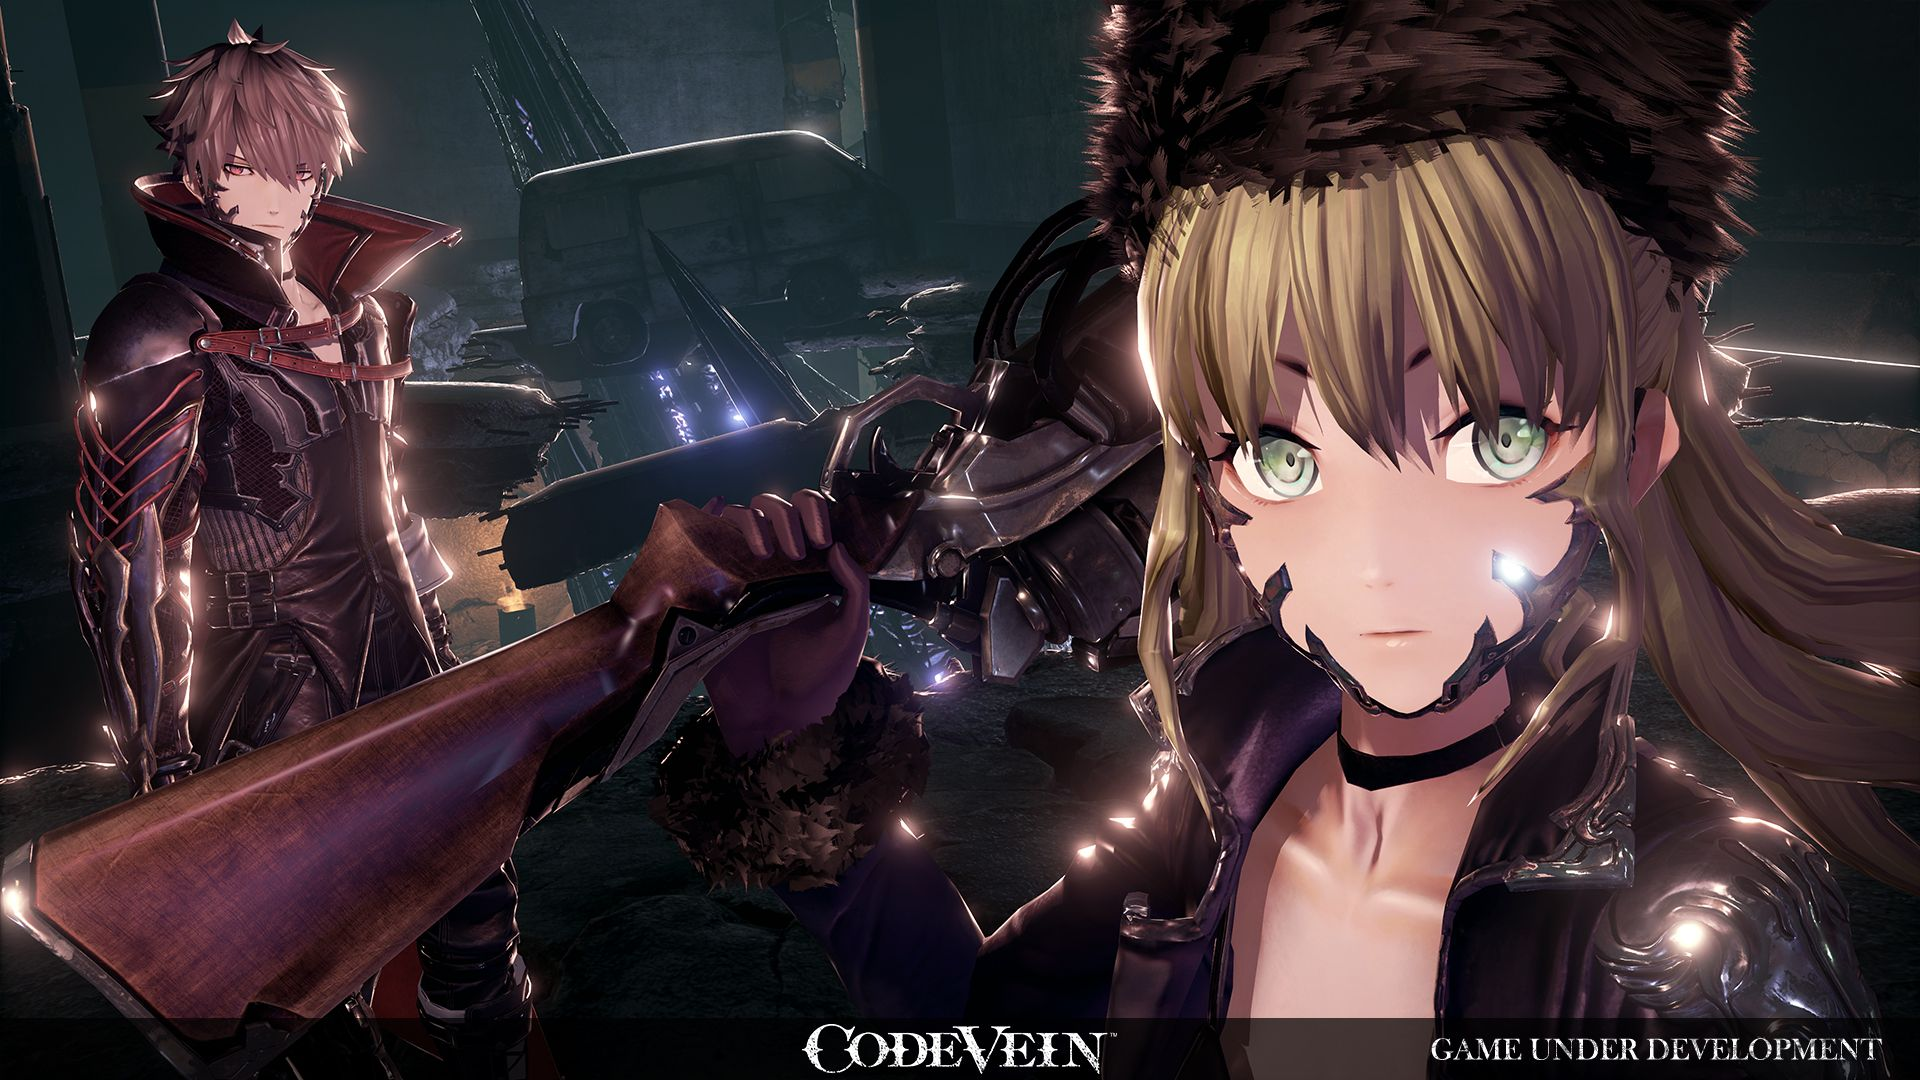 Bandai Namco Enthullt Das Action Rollenspiel Code Vein Anime2You